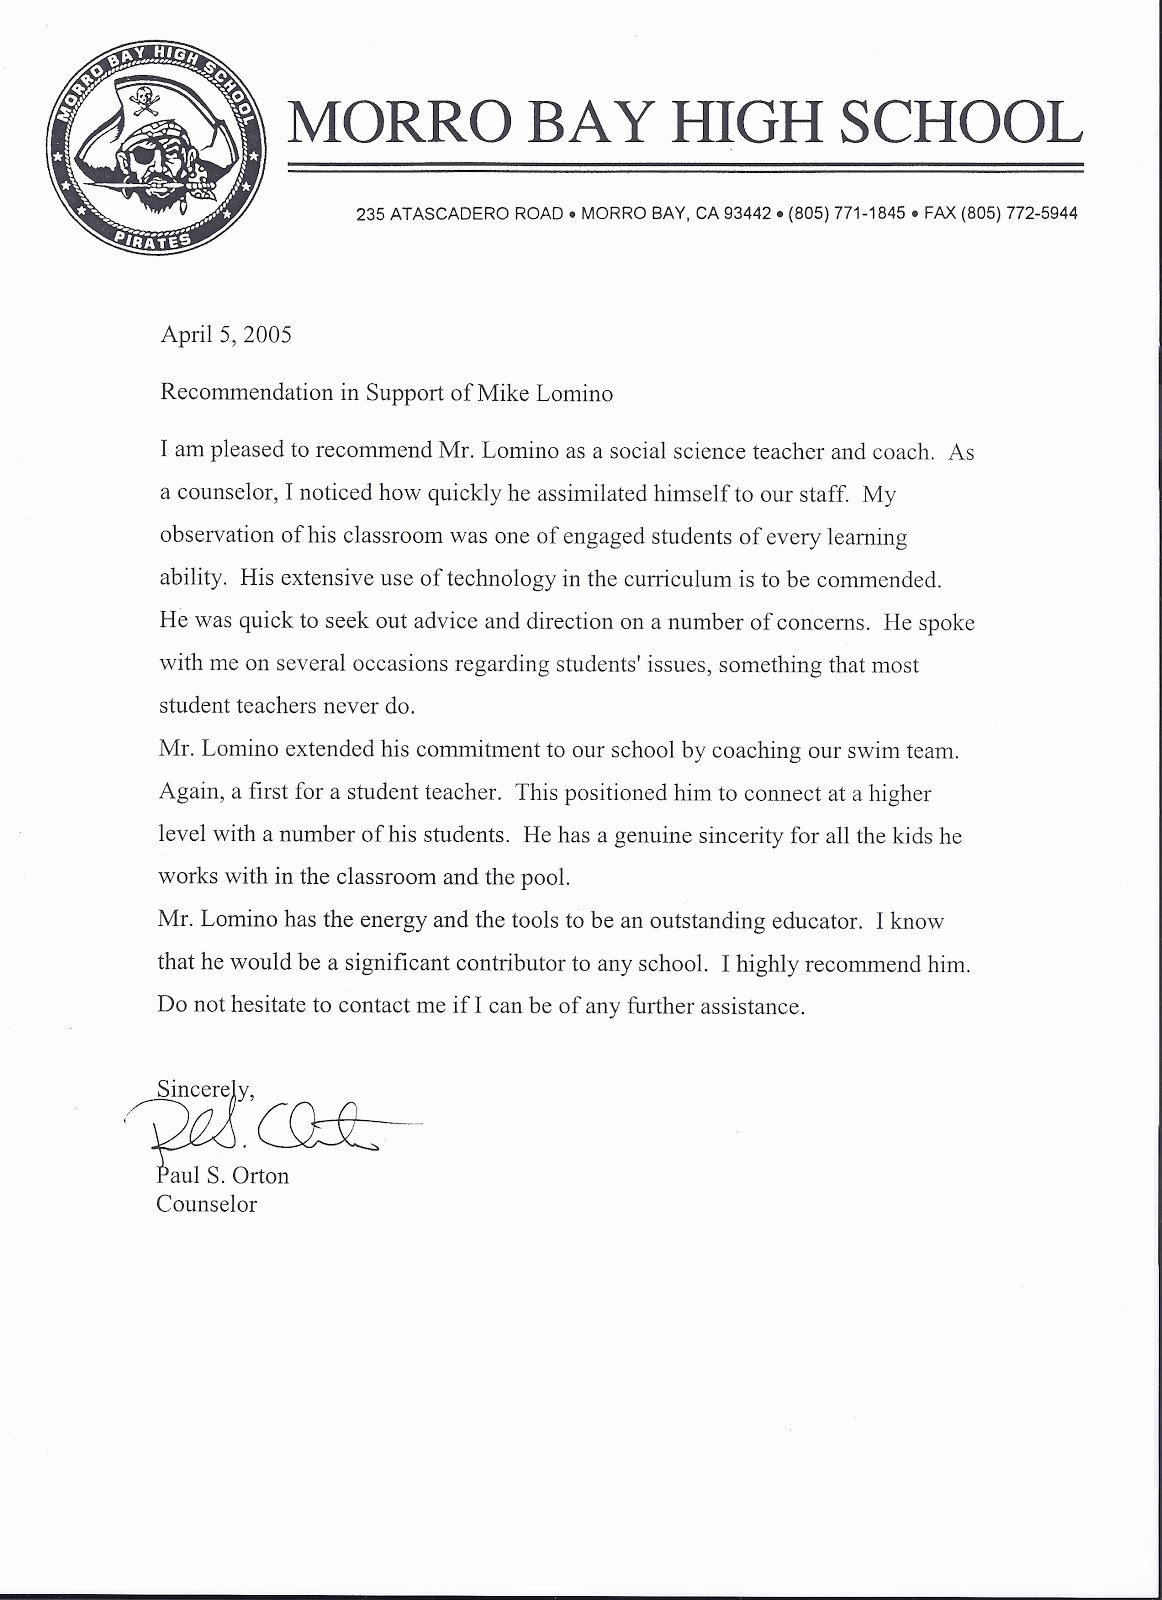 Counseling Letter Of Recommendation Unique Mr Lomino